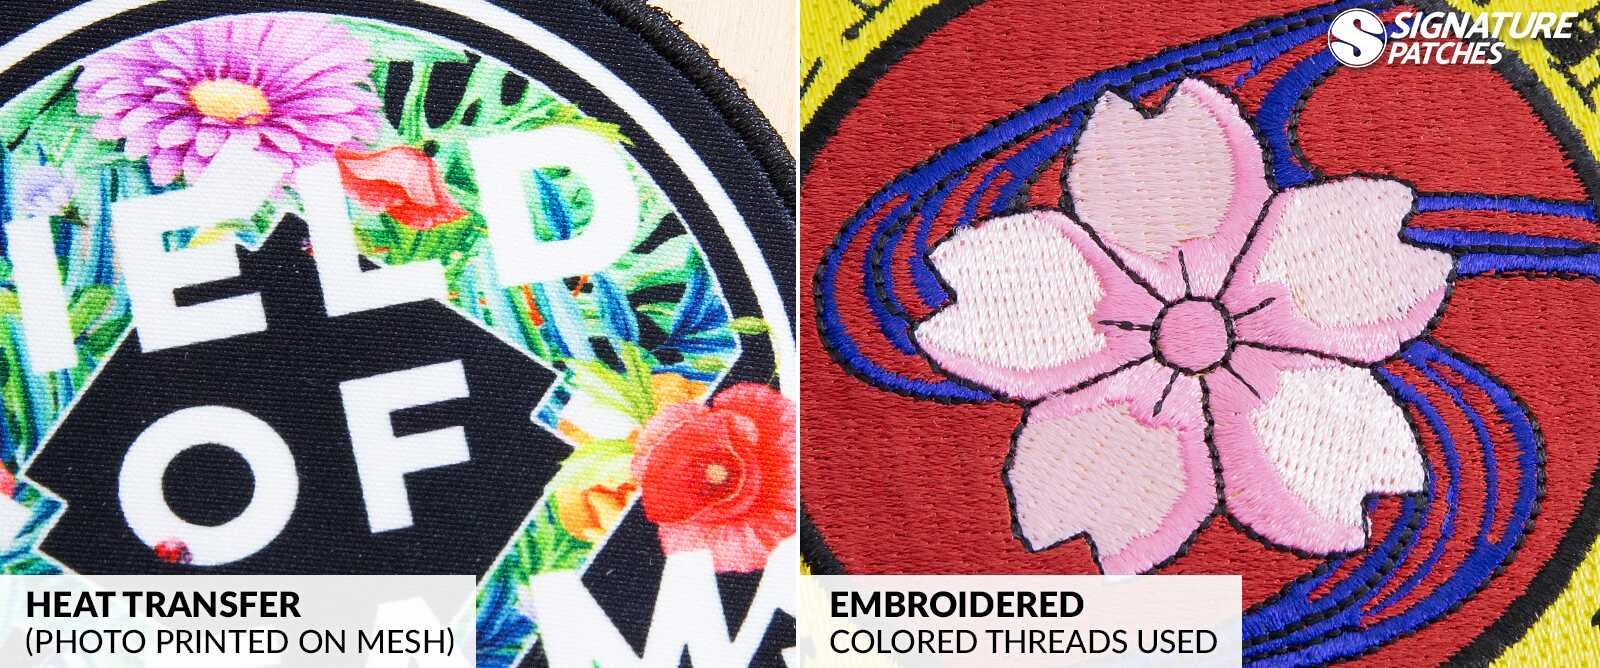 Signature Patches Heat Transfer Patches vs Embroidery